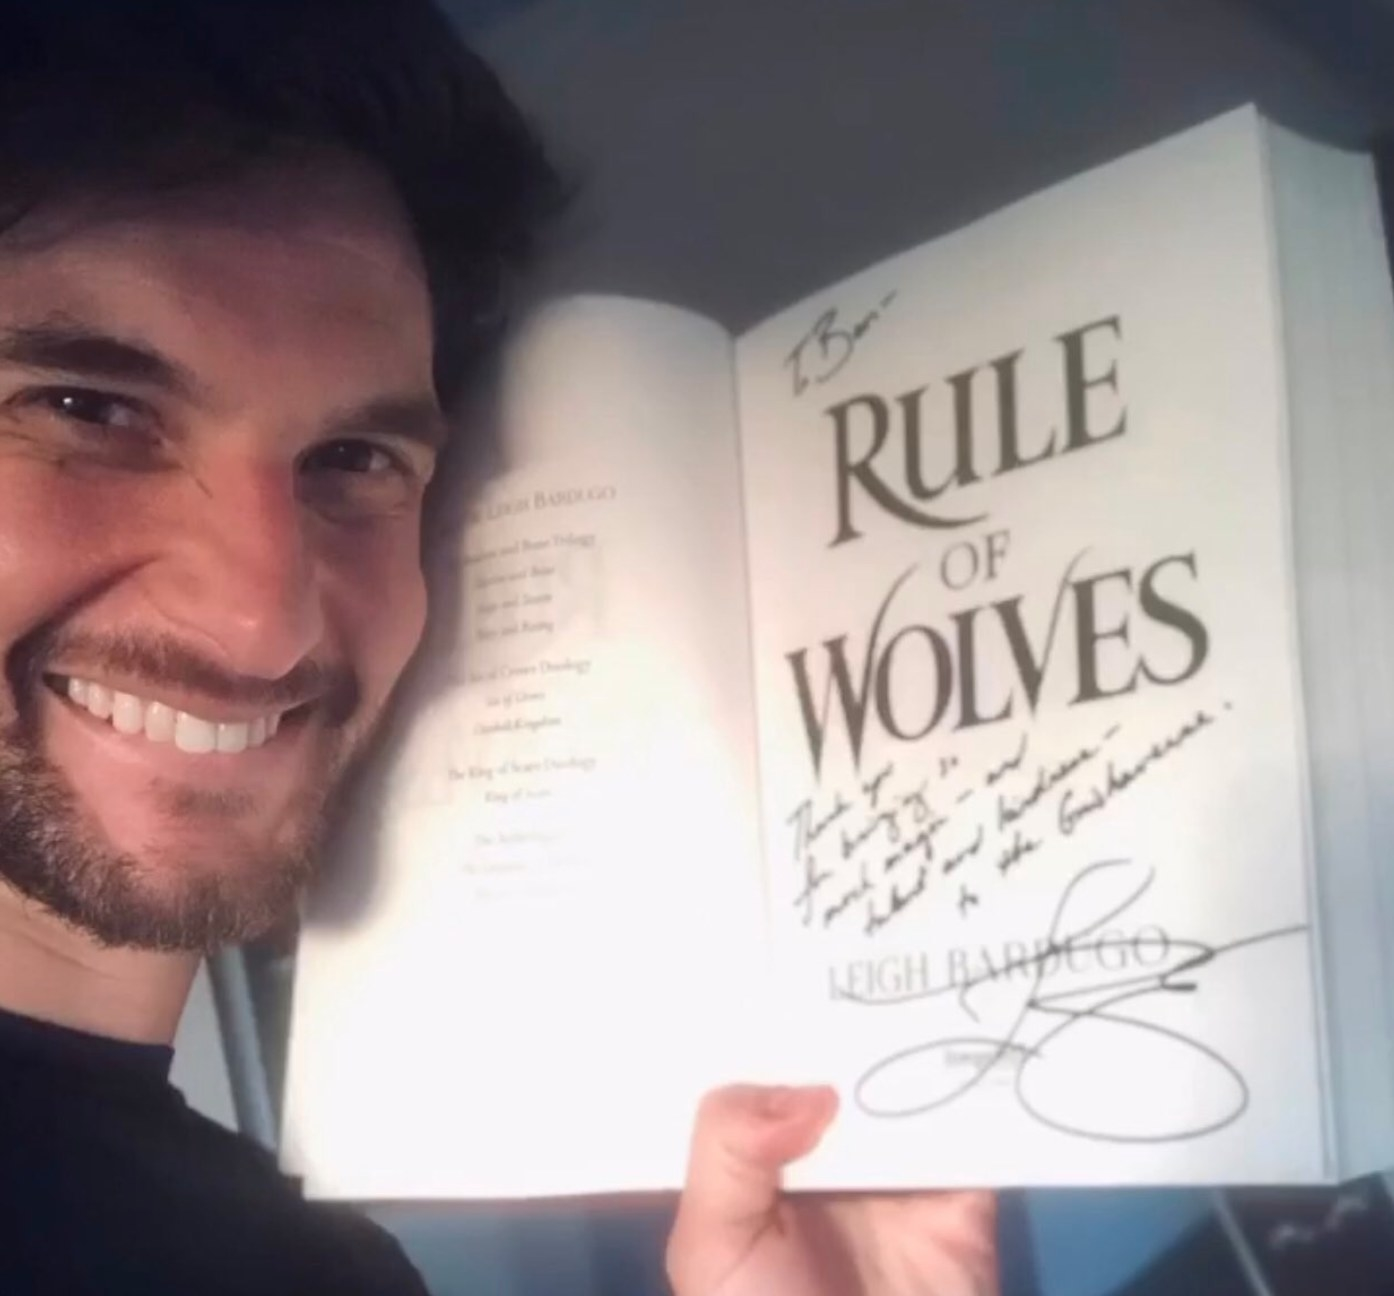 Ben Barnes holding a copy of Rule of Wolves by Leigh Bardugo